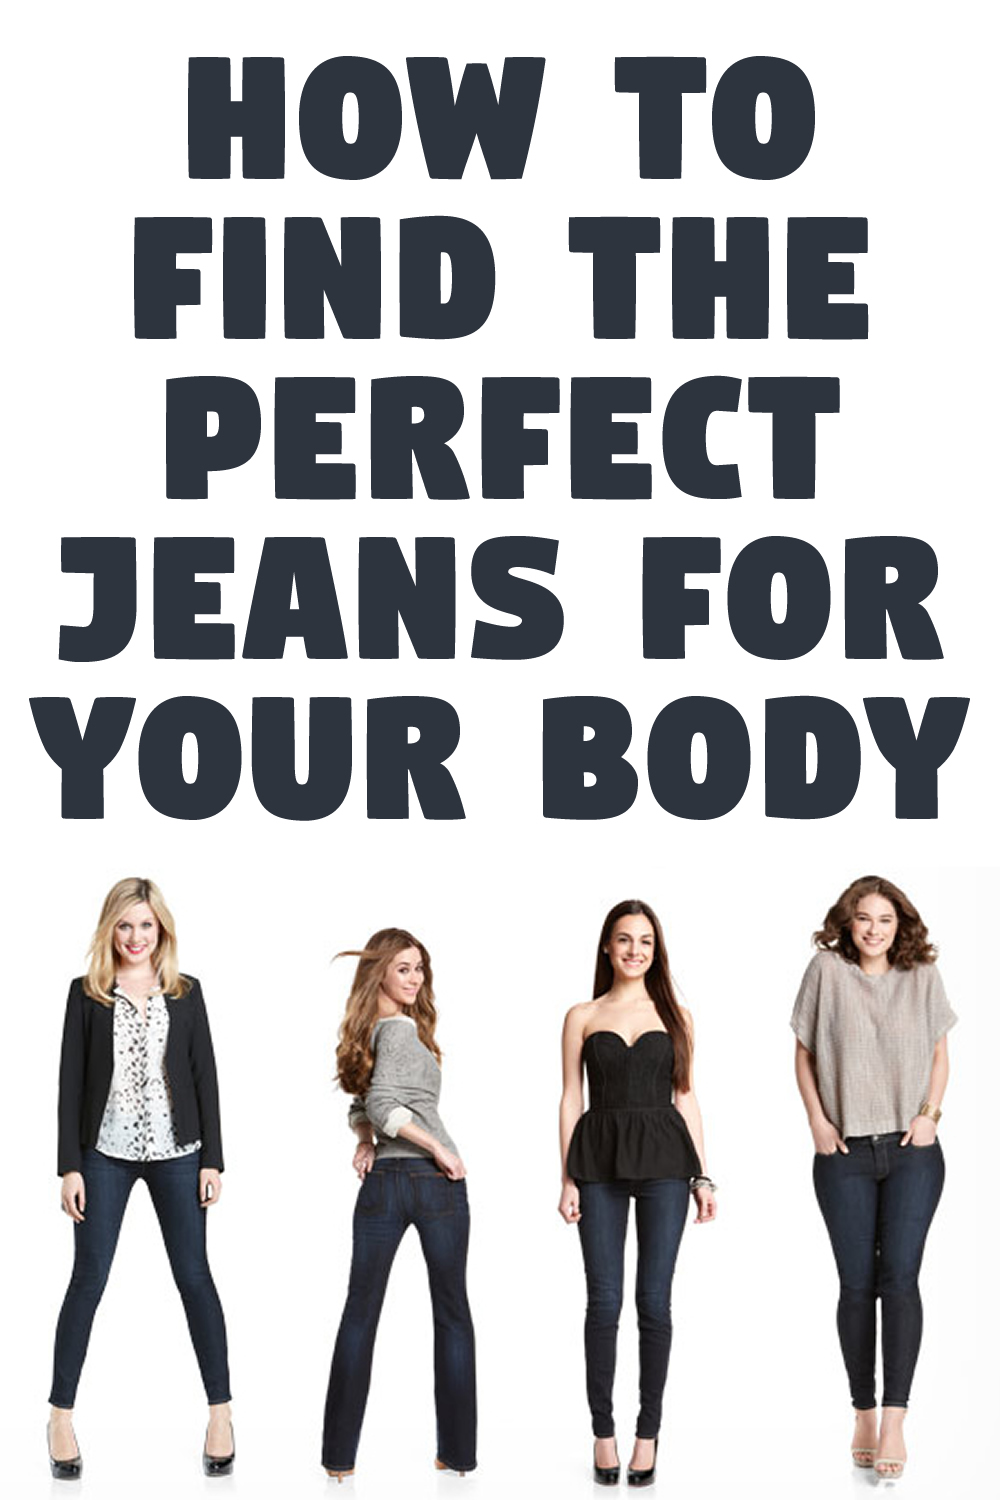 How to Find The Perfect Jeans For Your Body